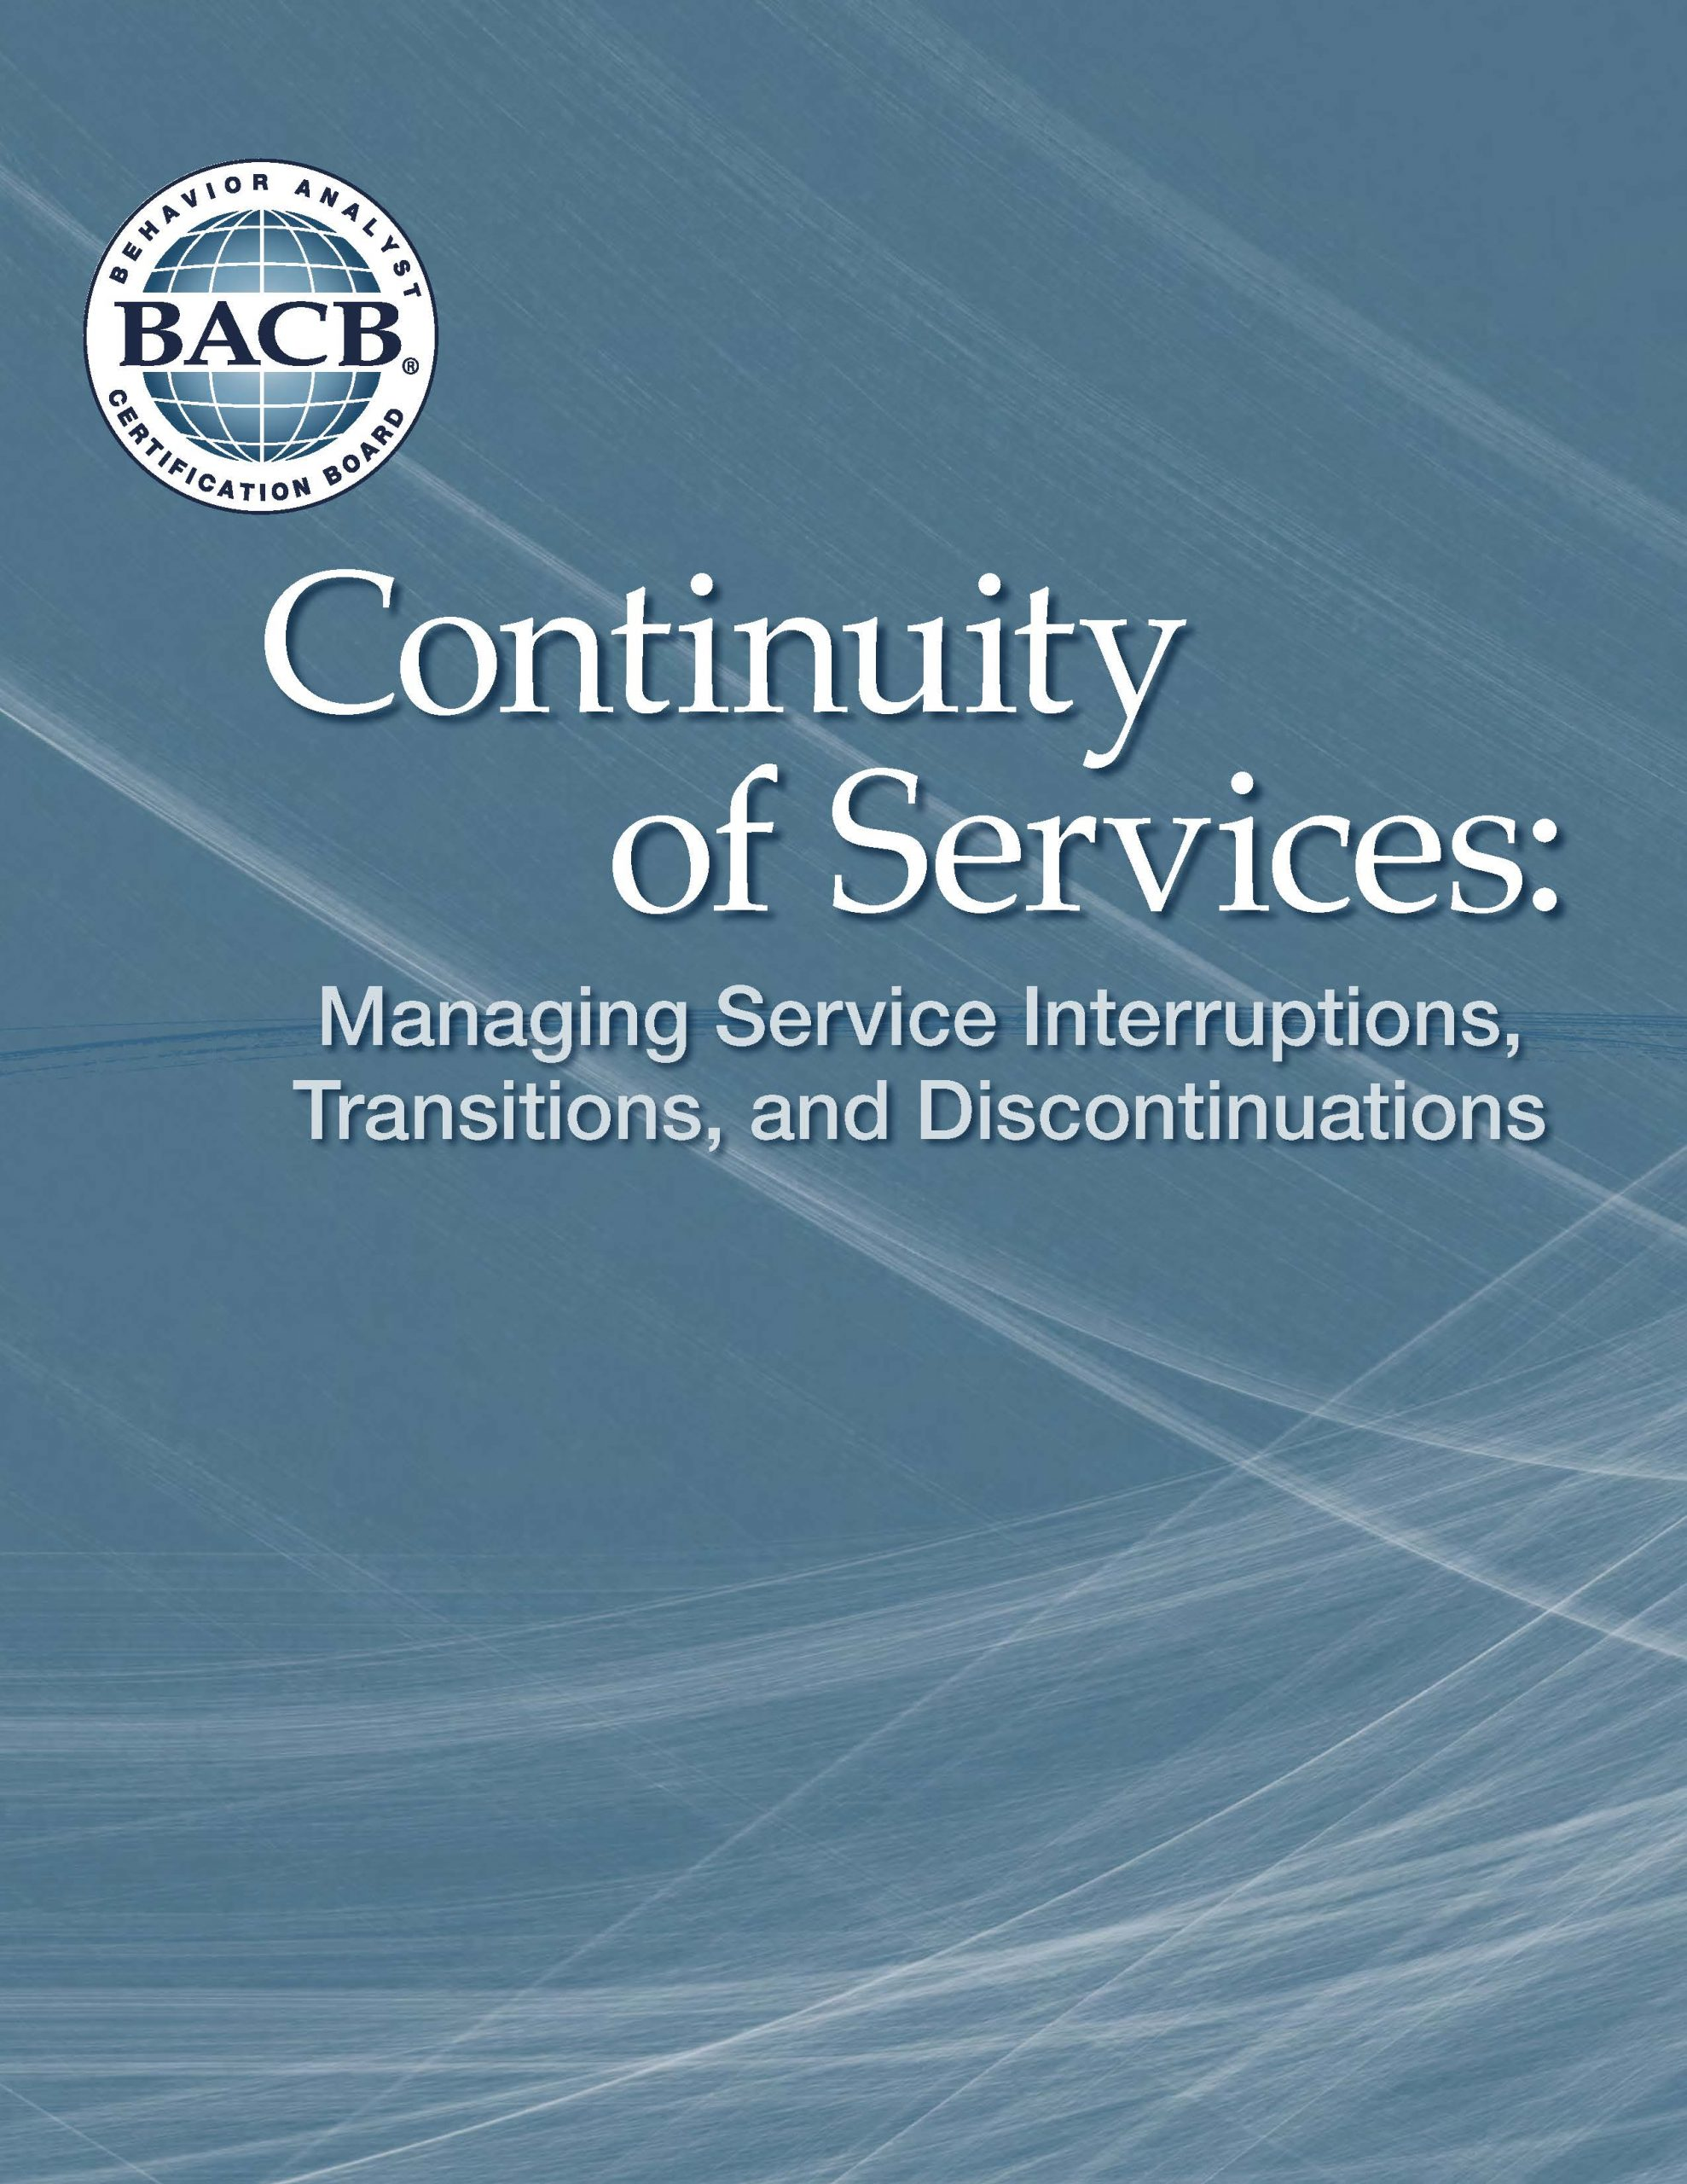 Continuity of Services thumbnail